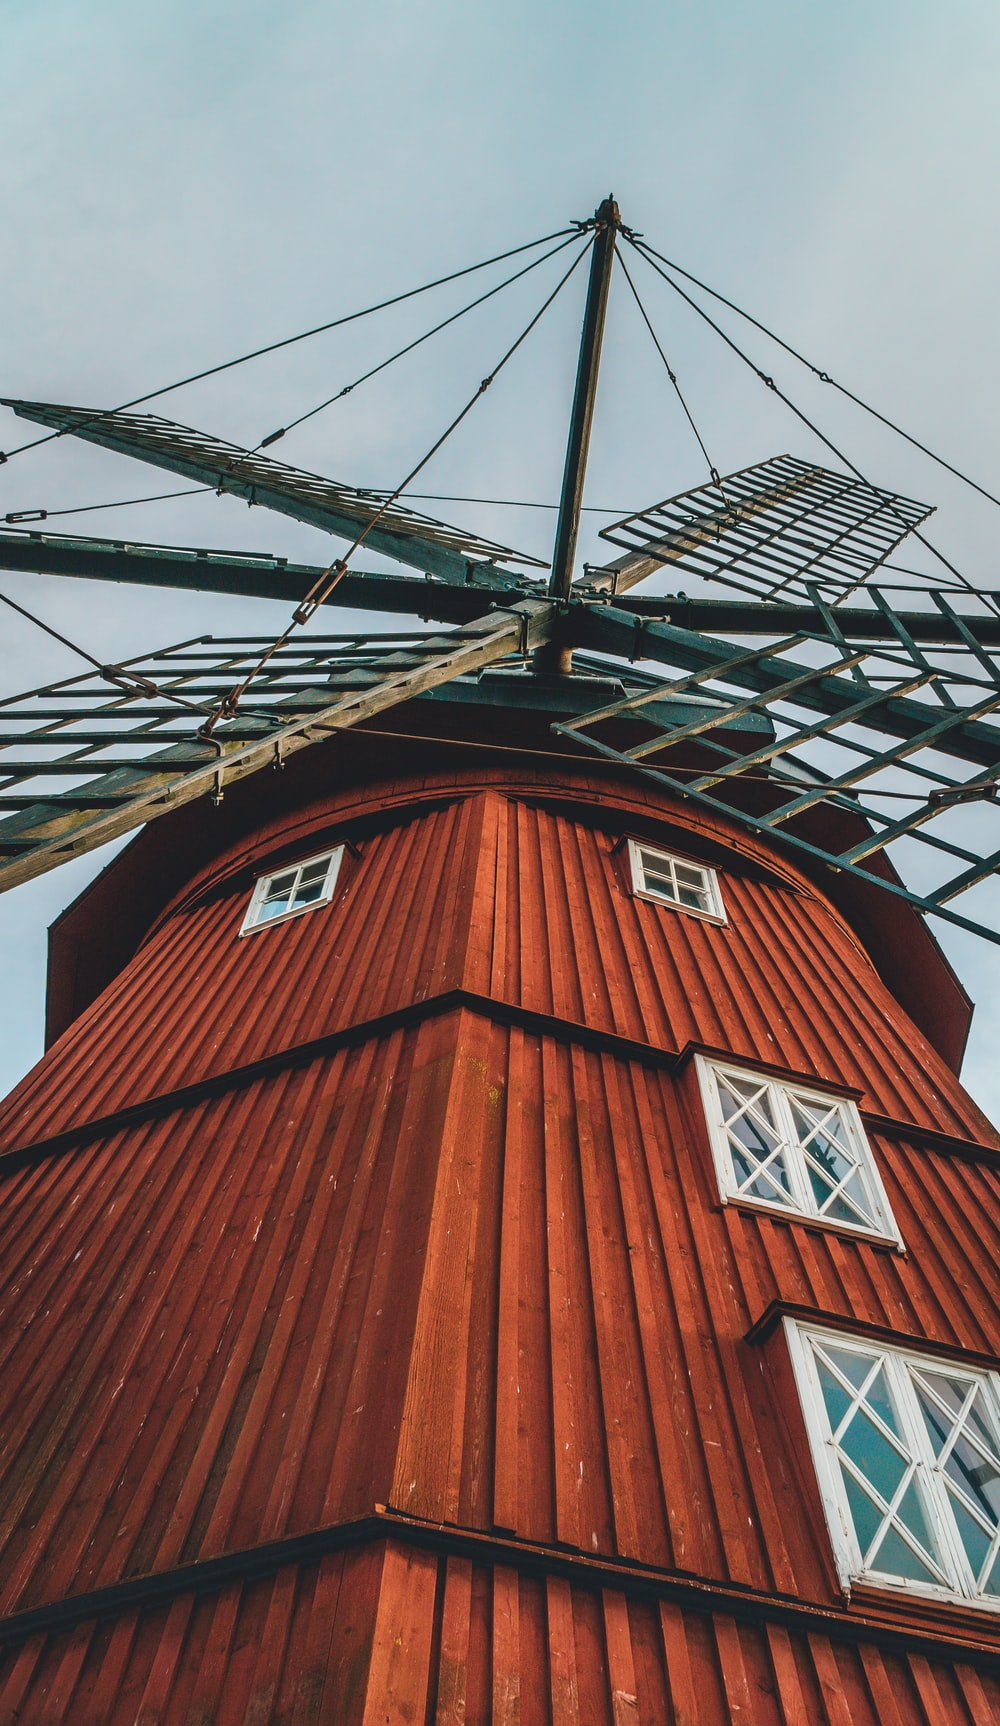 brown and black windmill during daytime